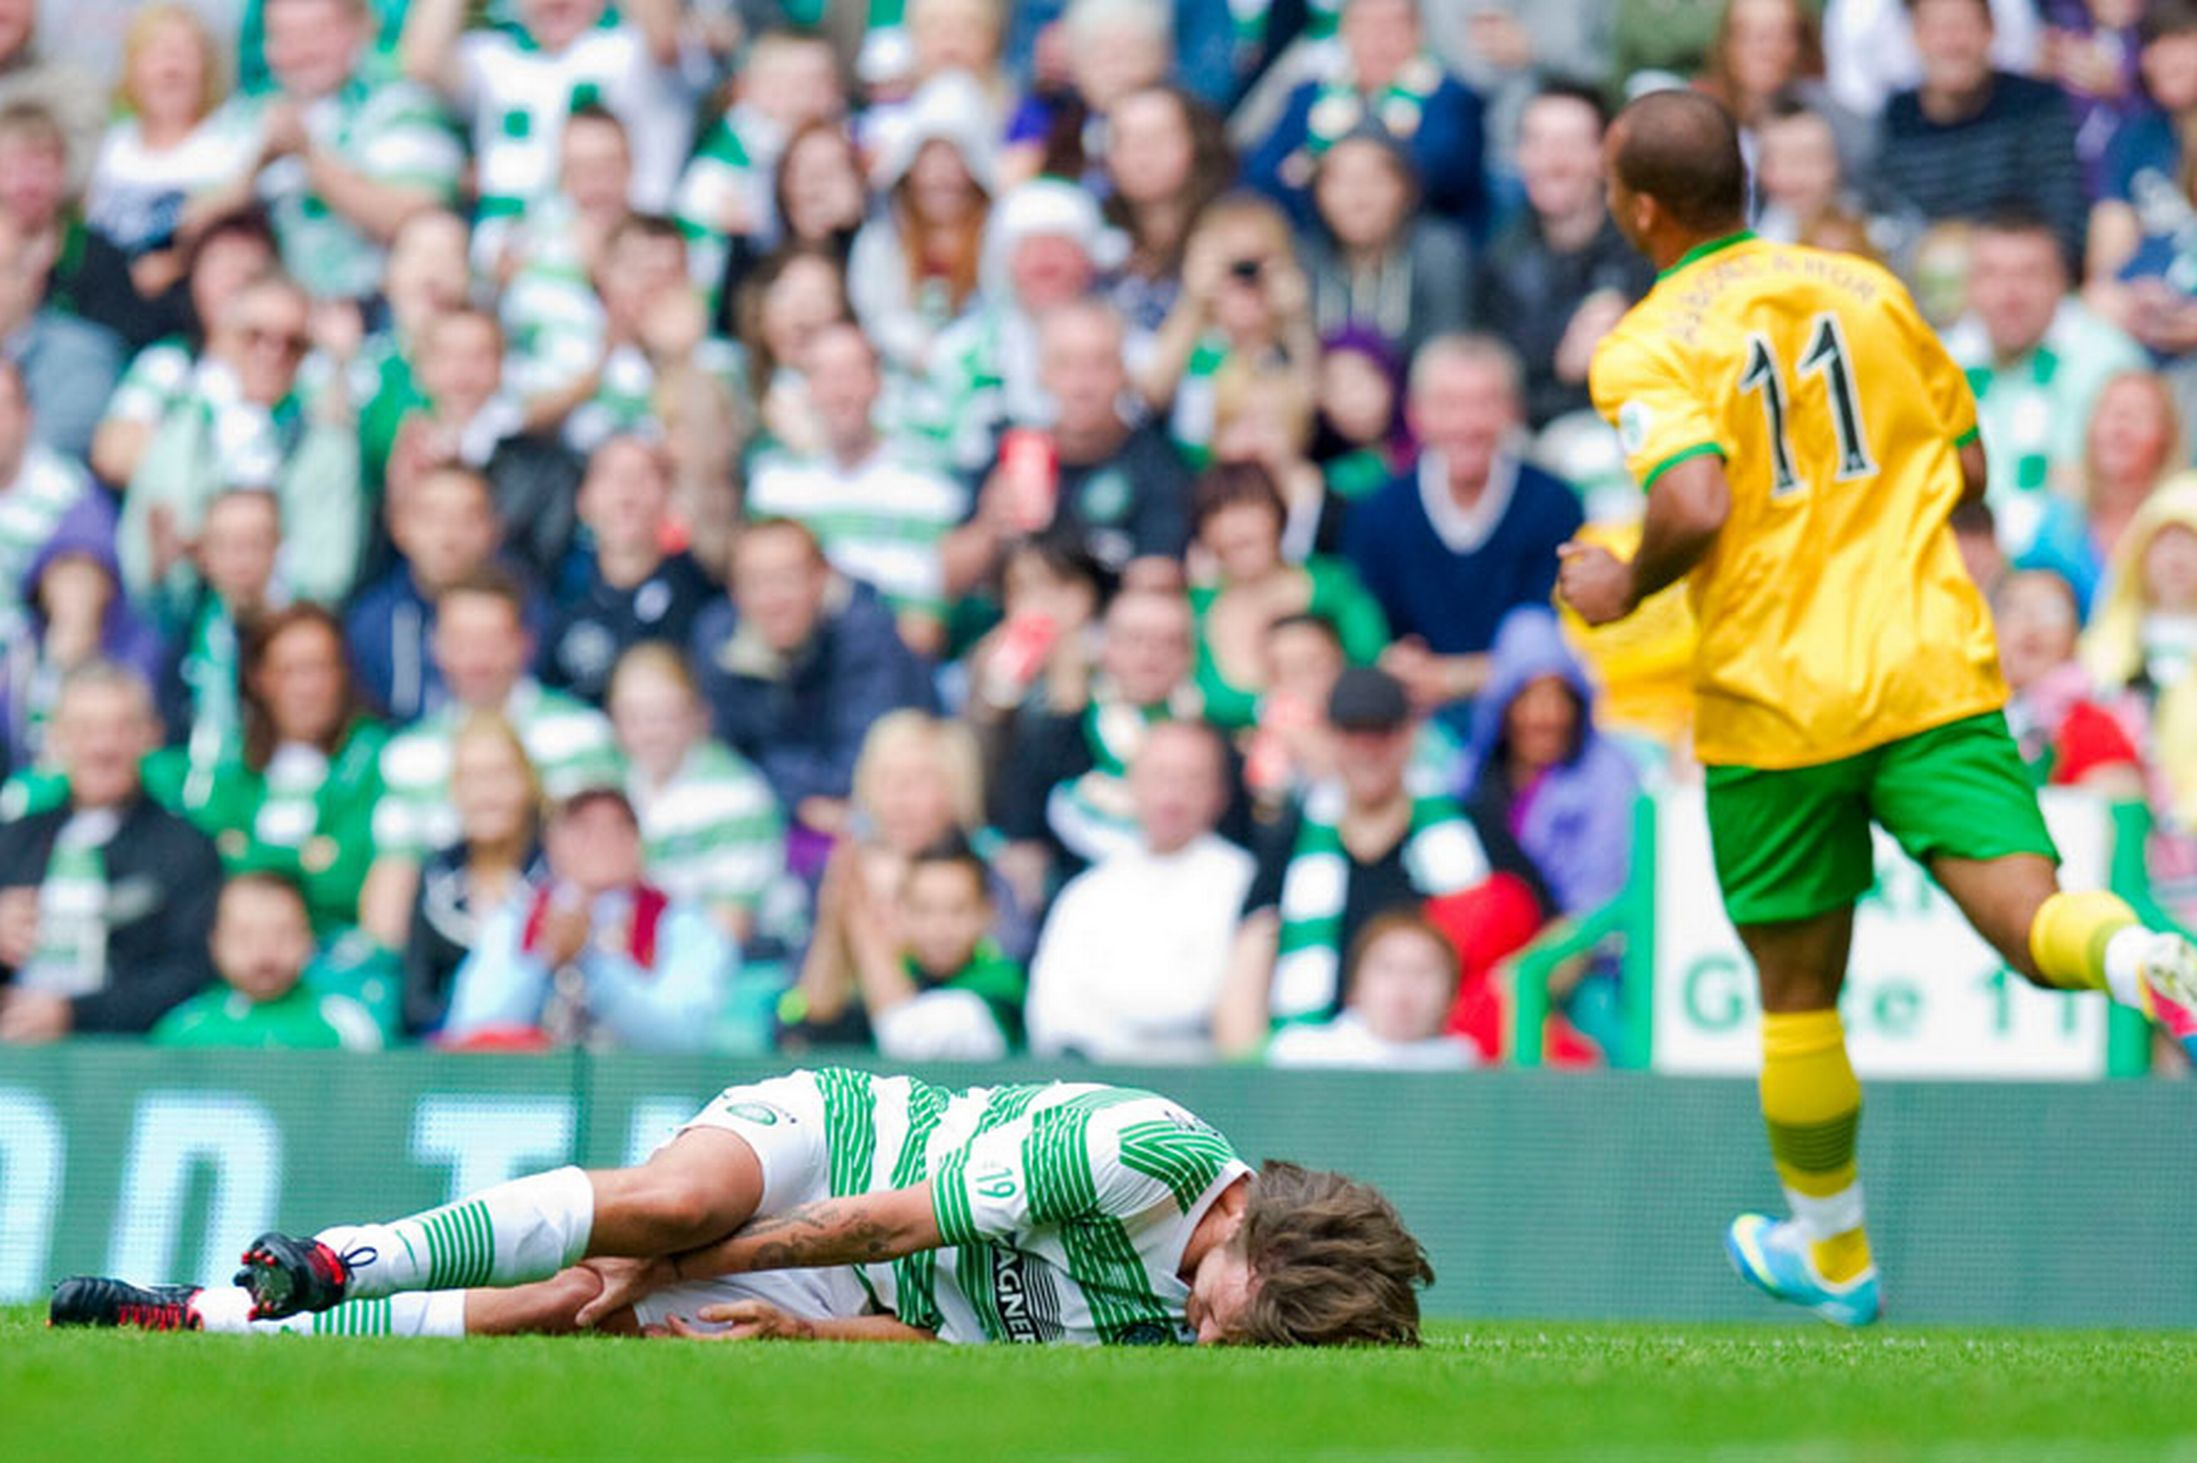 Featured image for Poor Baby: Louis Tomlinson Gets Tackled and Vomits! [PHOTOS]